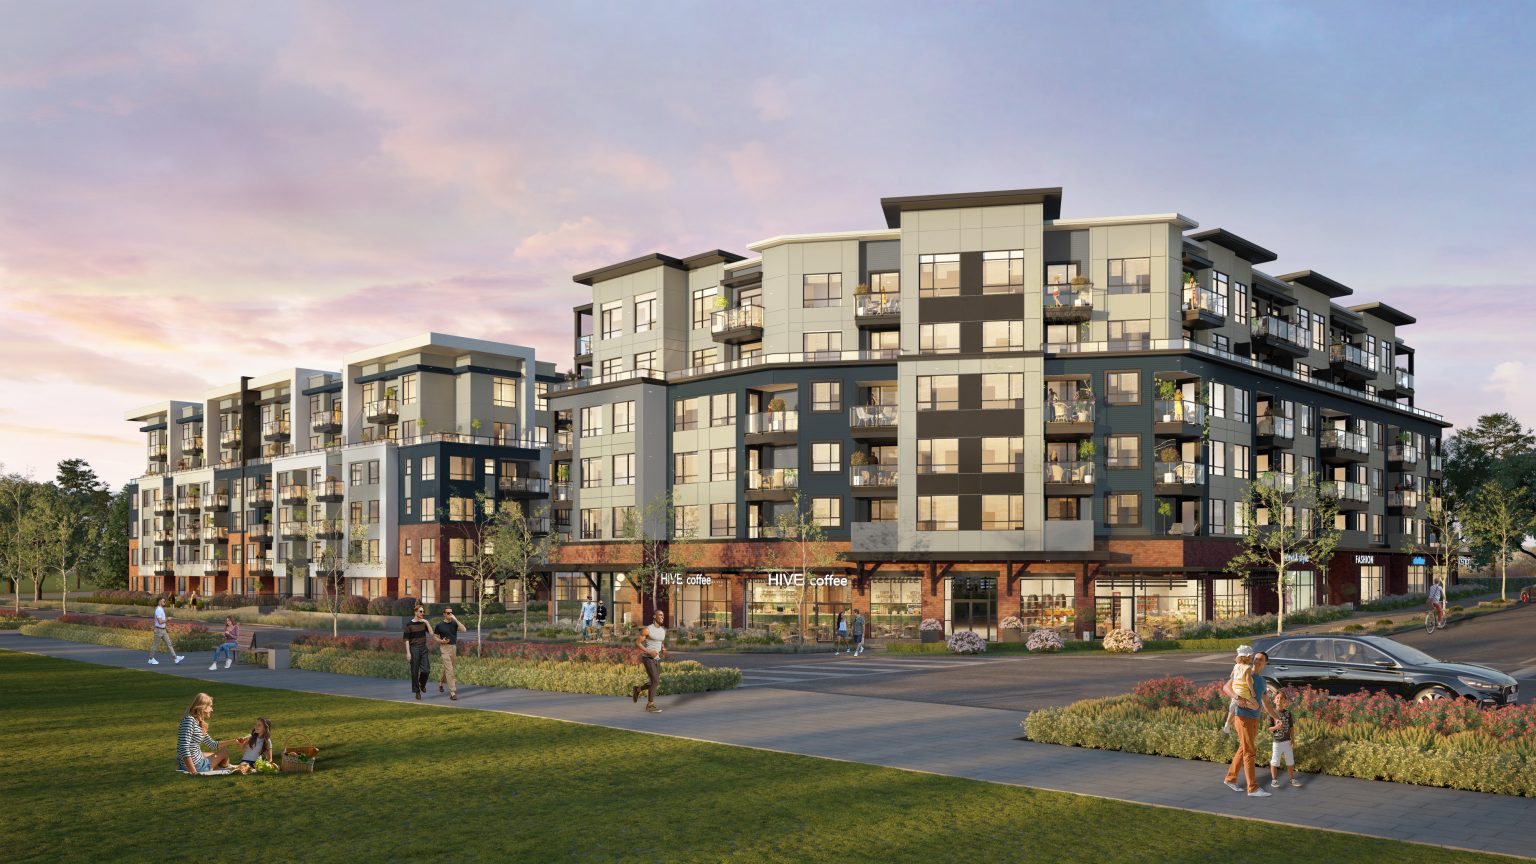 The Hive At Willoughby Town Centre By Apcon Group – Plans, Availability, Prices